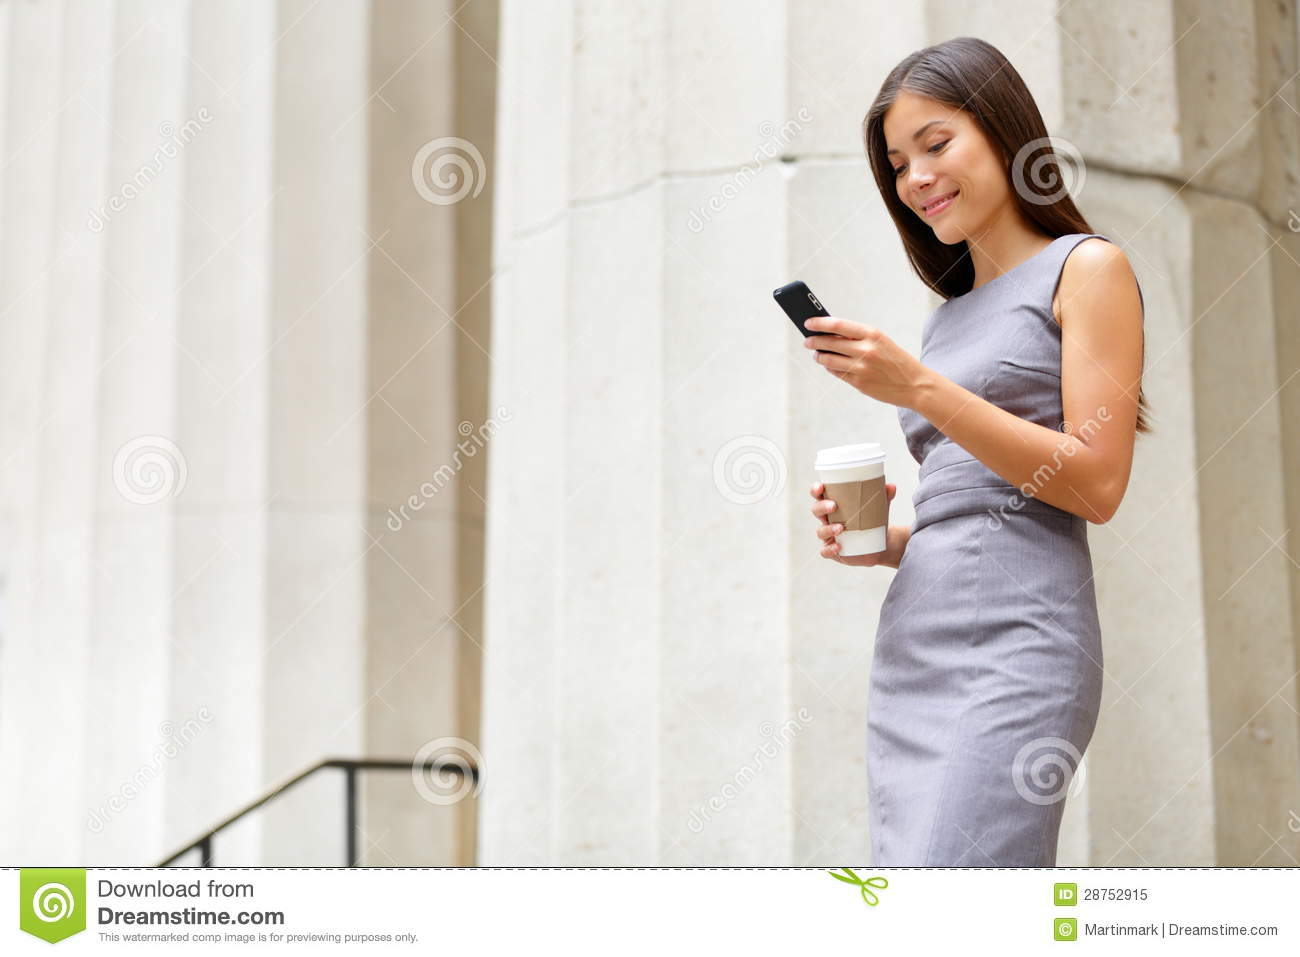 Attorney - young asian woman lawyer